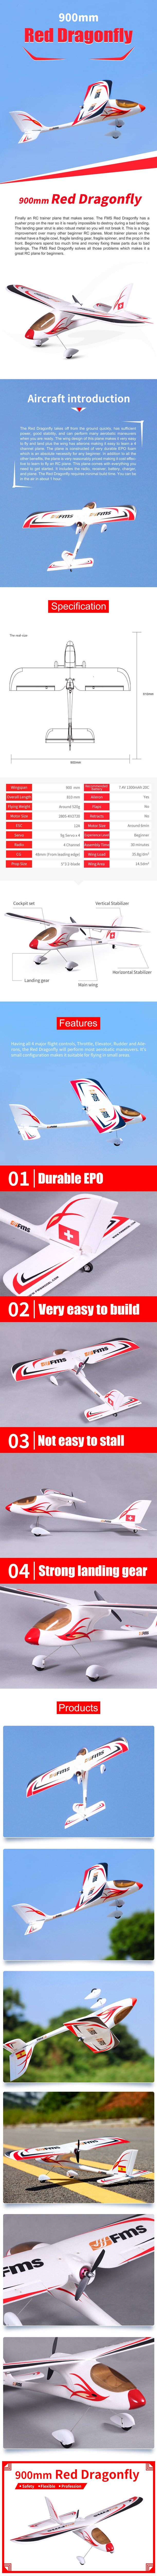 FMS Red Dragonfly 900mm Wingspan EPO 3D Aerobatic RC Airplane Trainer Beginner RTF